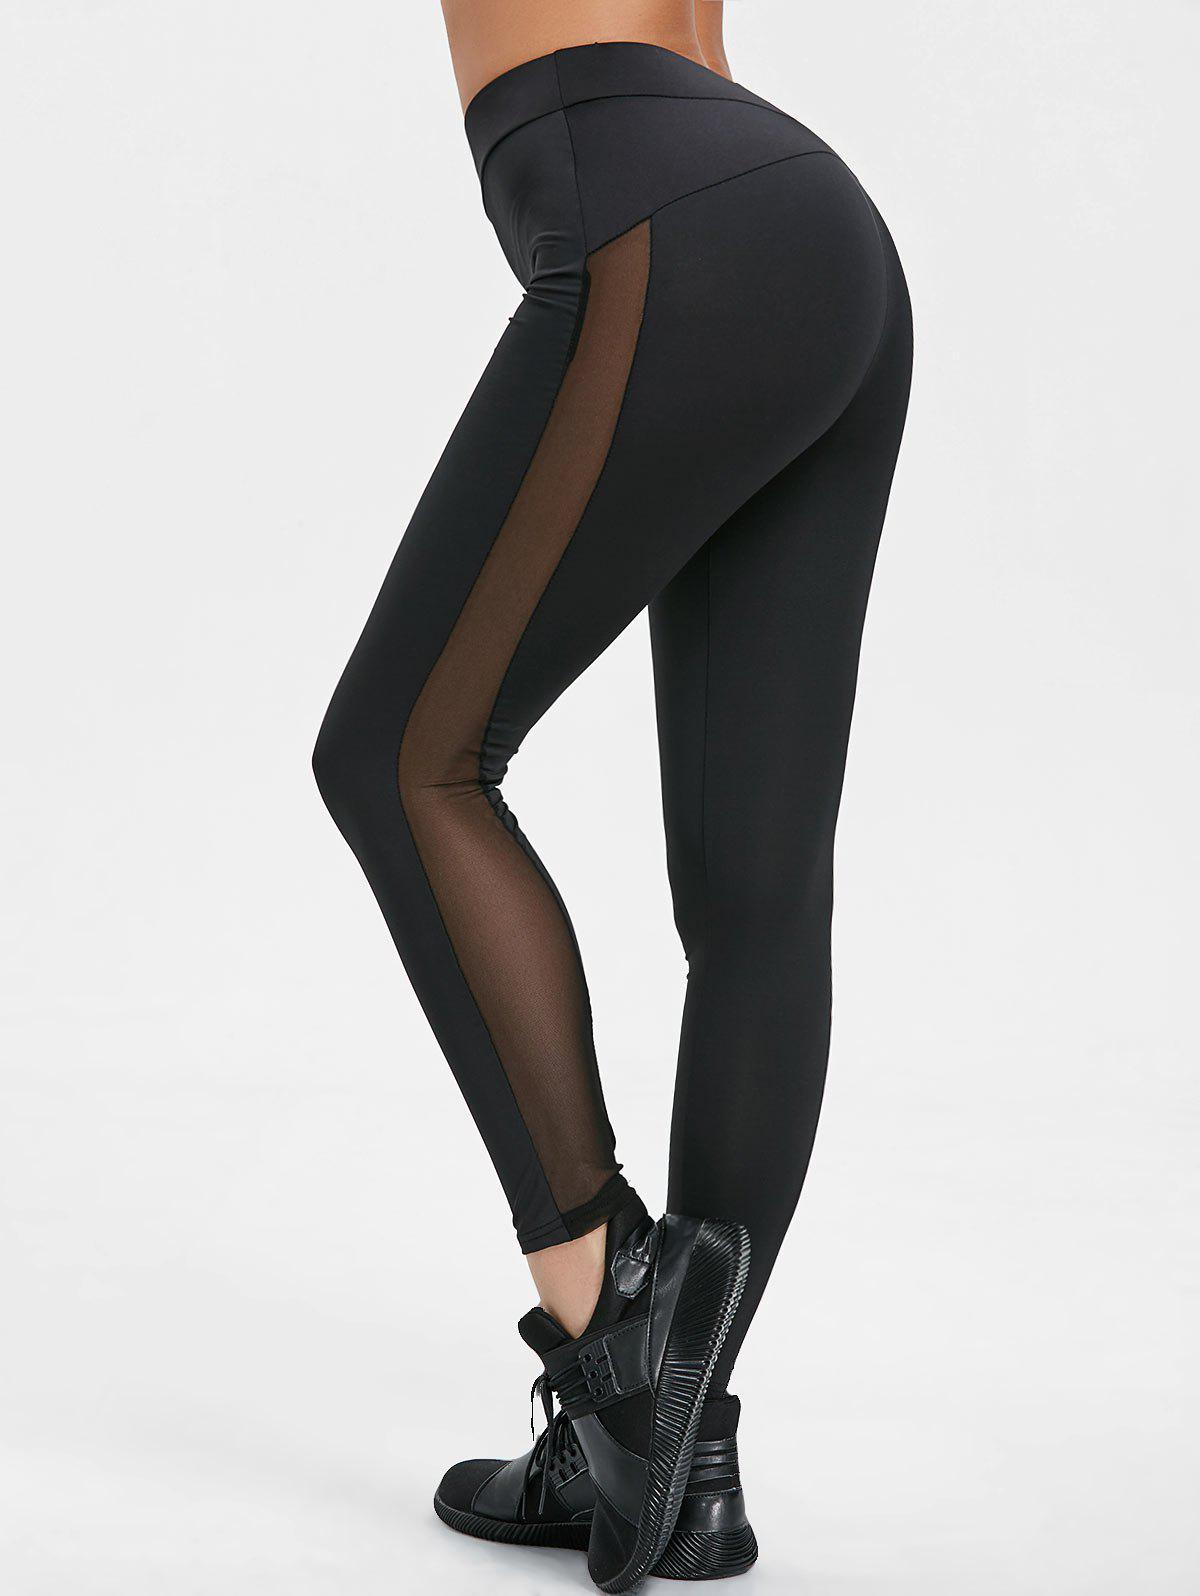 Discount High Waisted Mesh Insert Yoga Pants